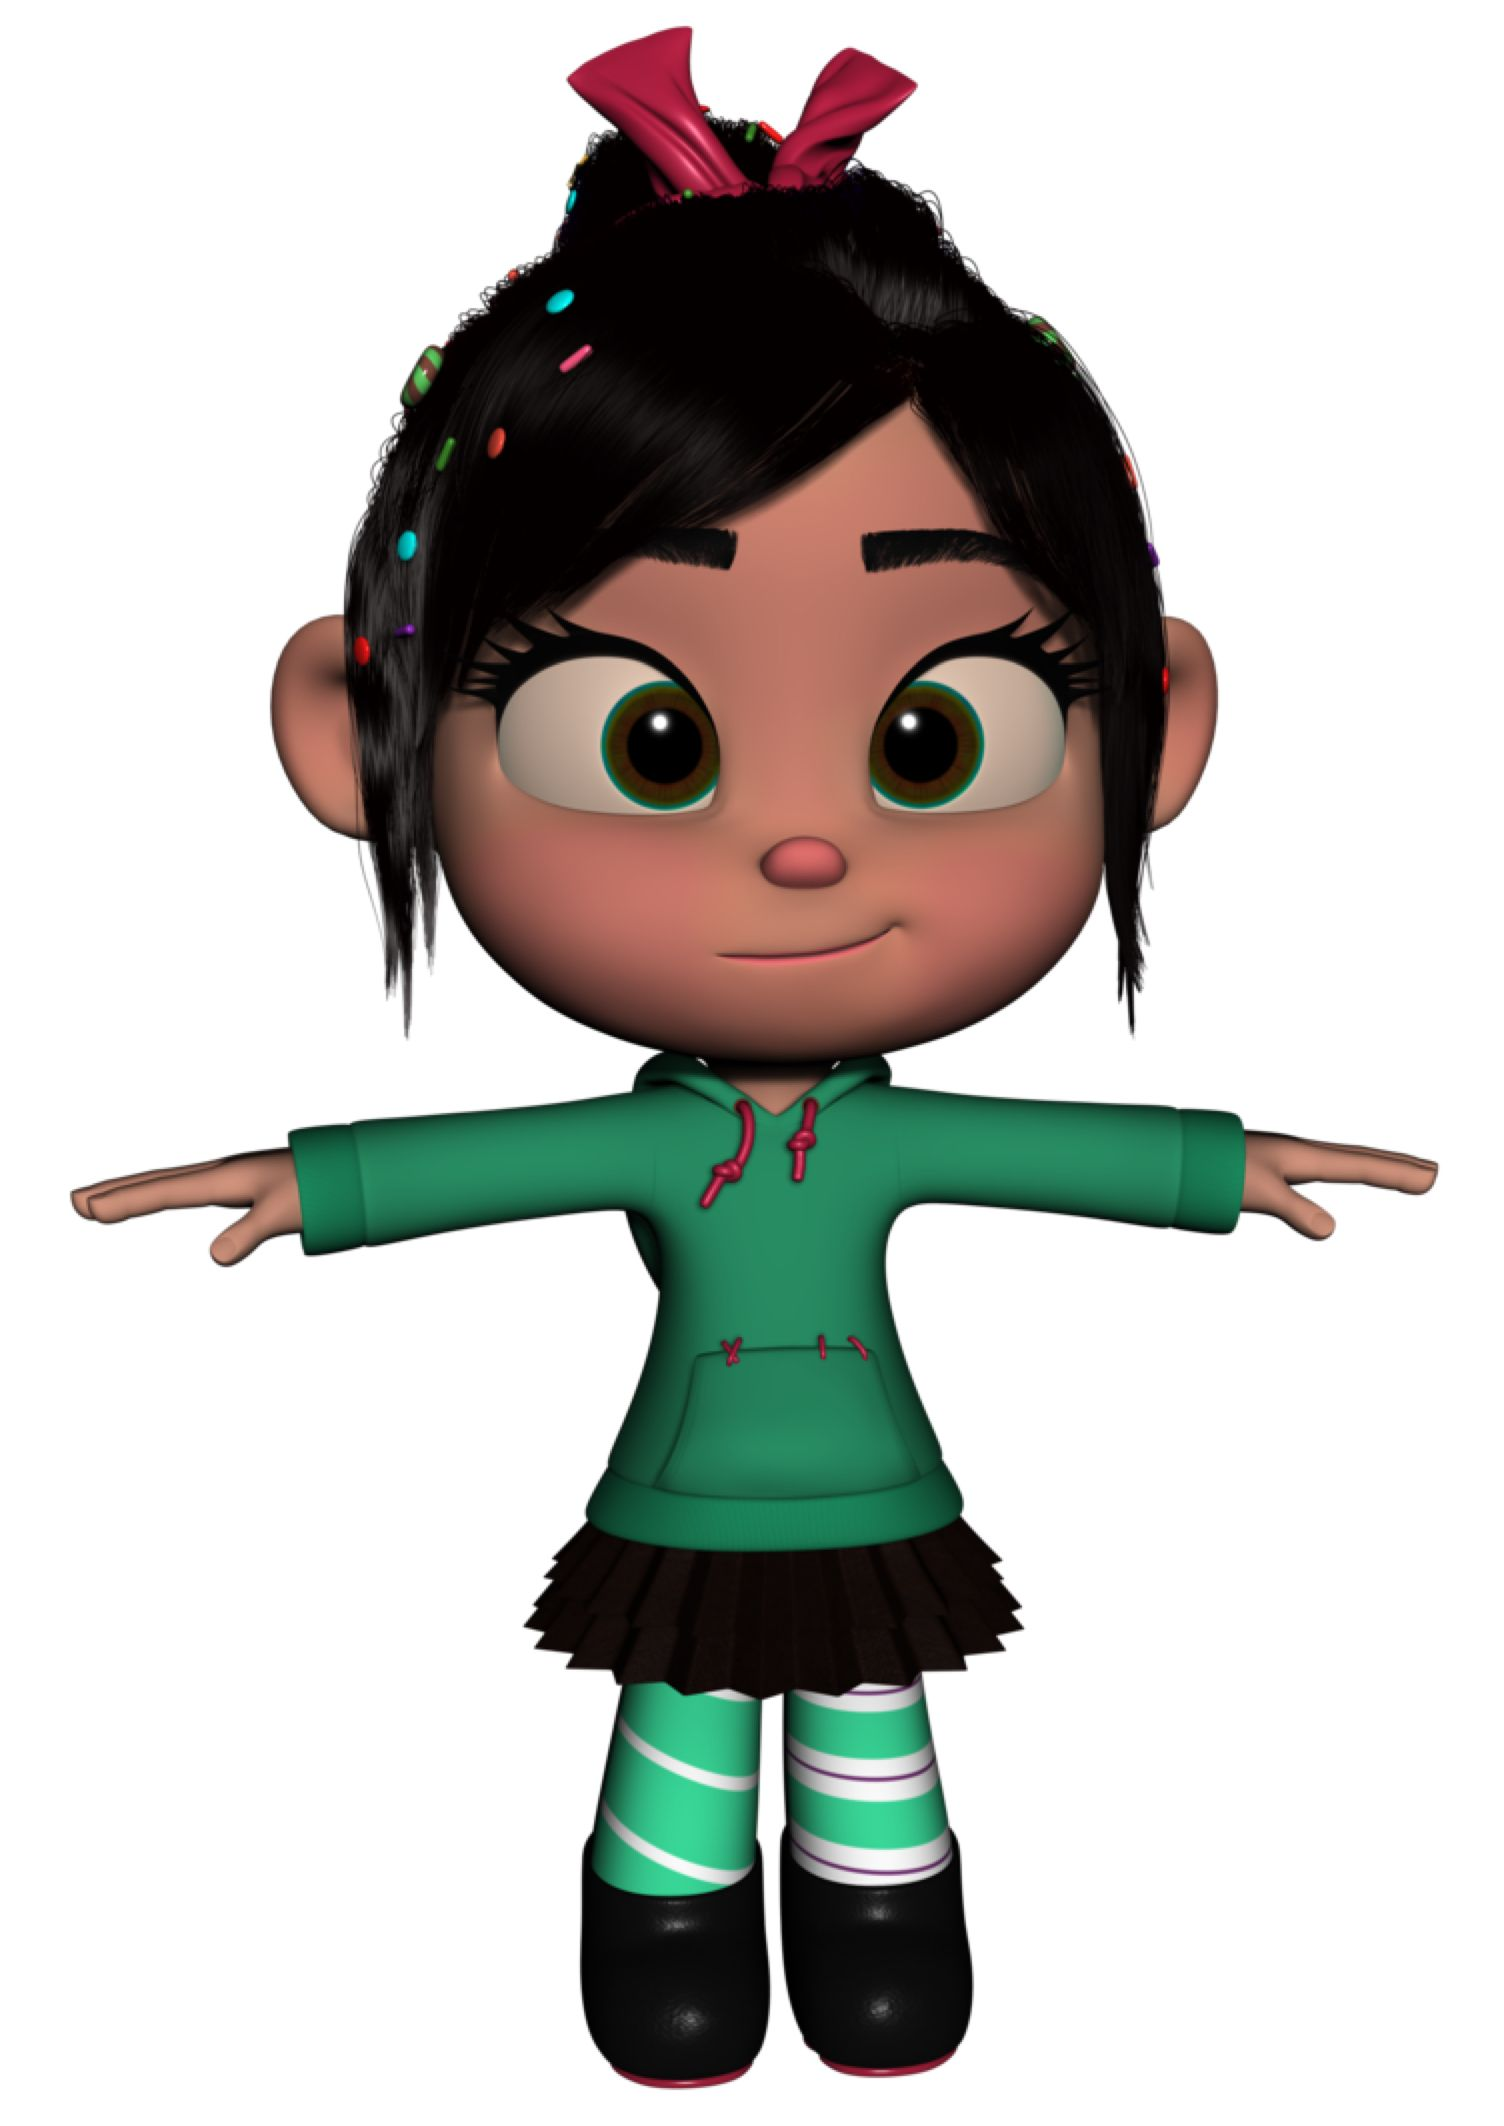 Vanellope 3d Render Wip By Skyriderr On Deviantart With Images